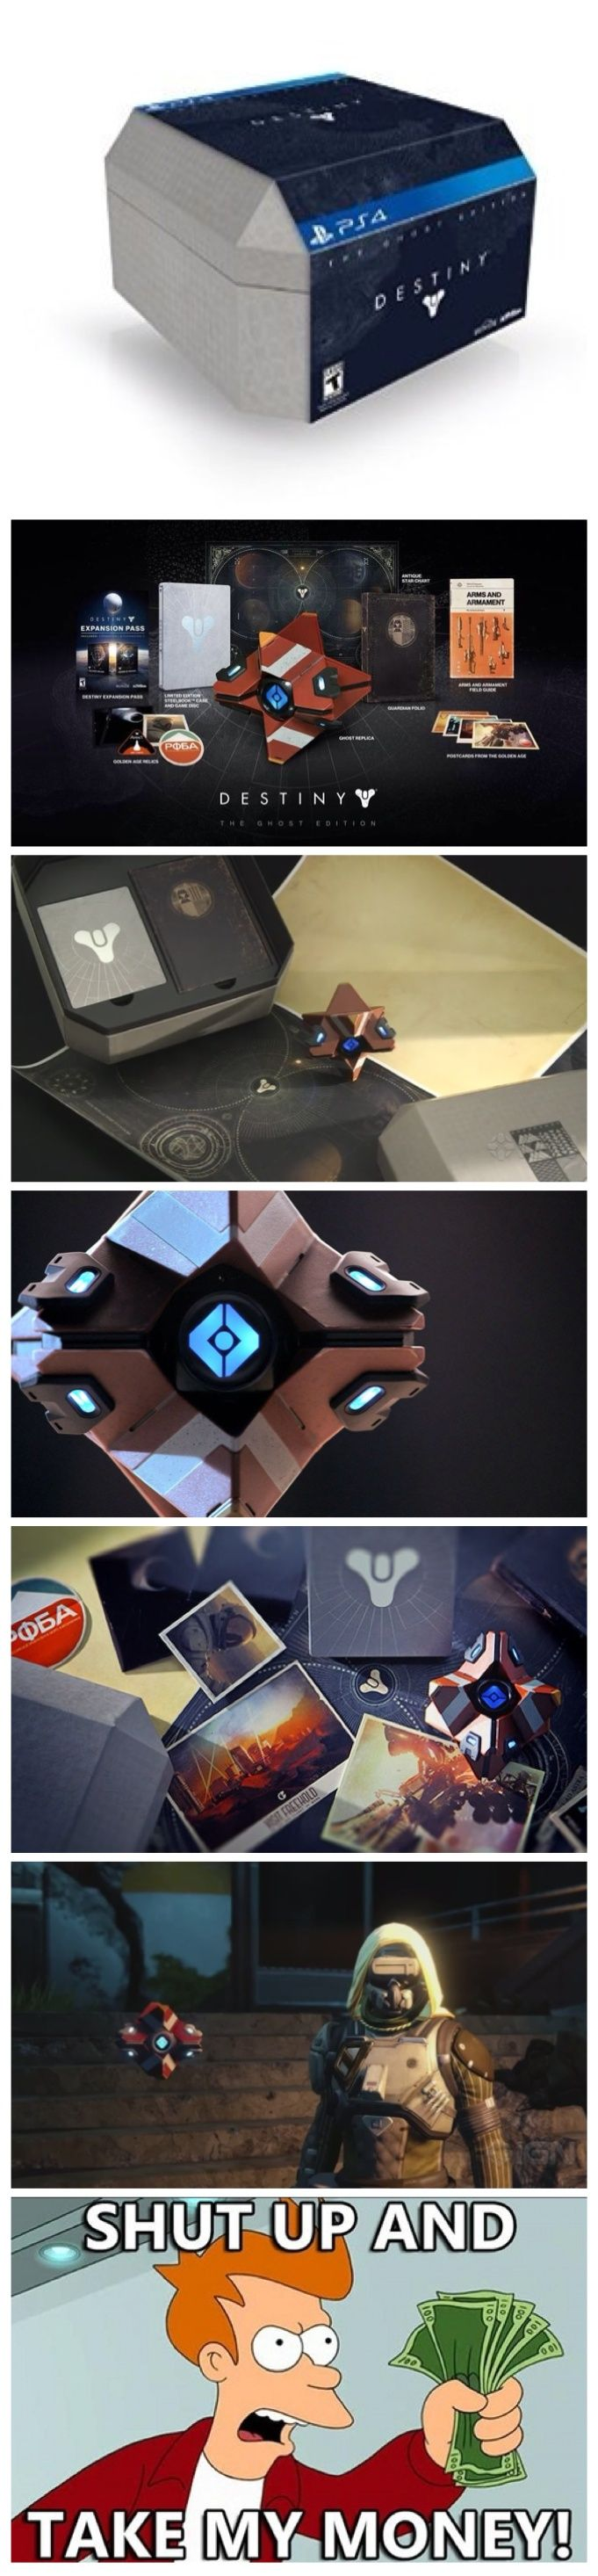 Destiny Ghost Edition : I remember seeing someone with that red ghost wondering where the heck they got it from.